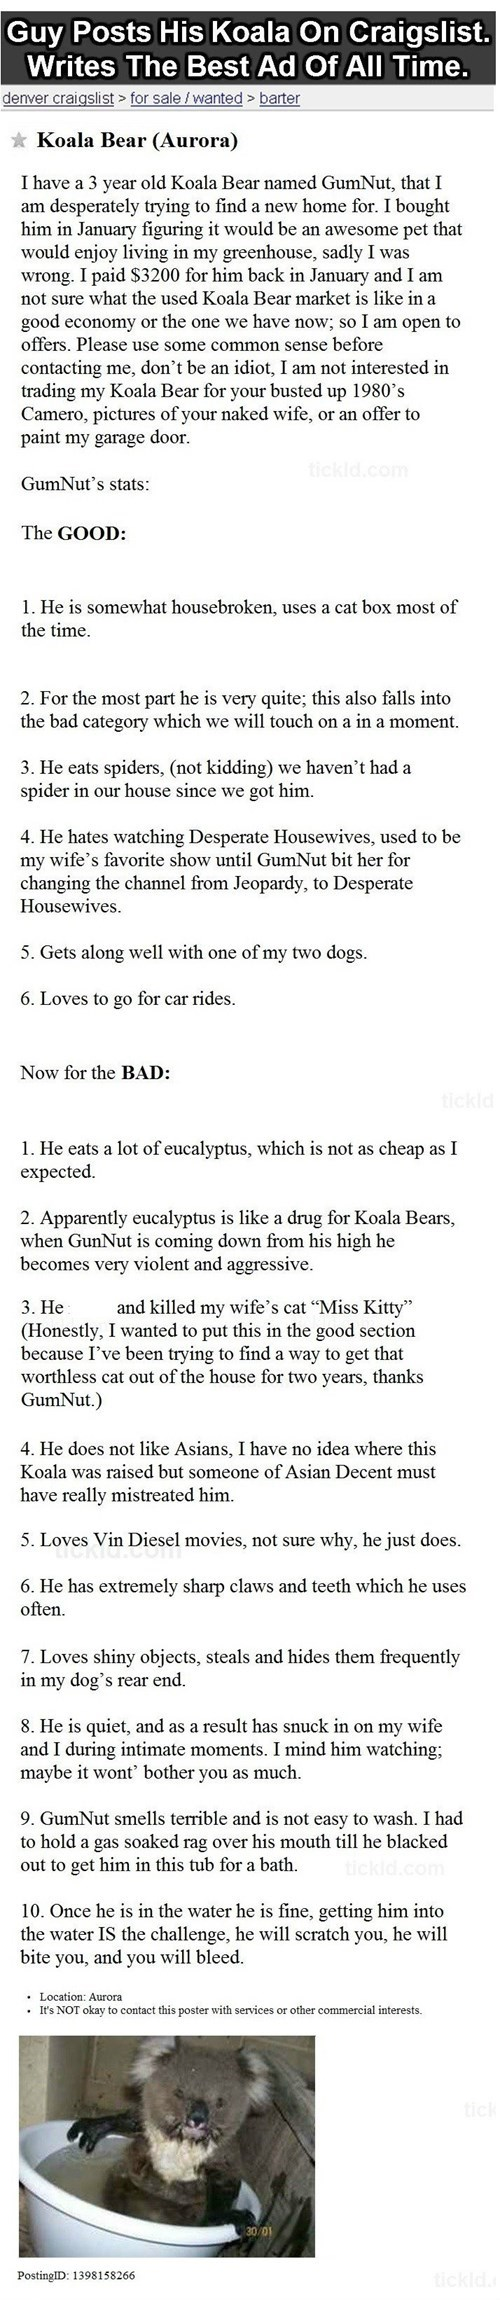 A Man Selling His Koala Makes the Best Craigslist Post Ever